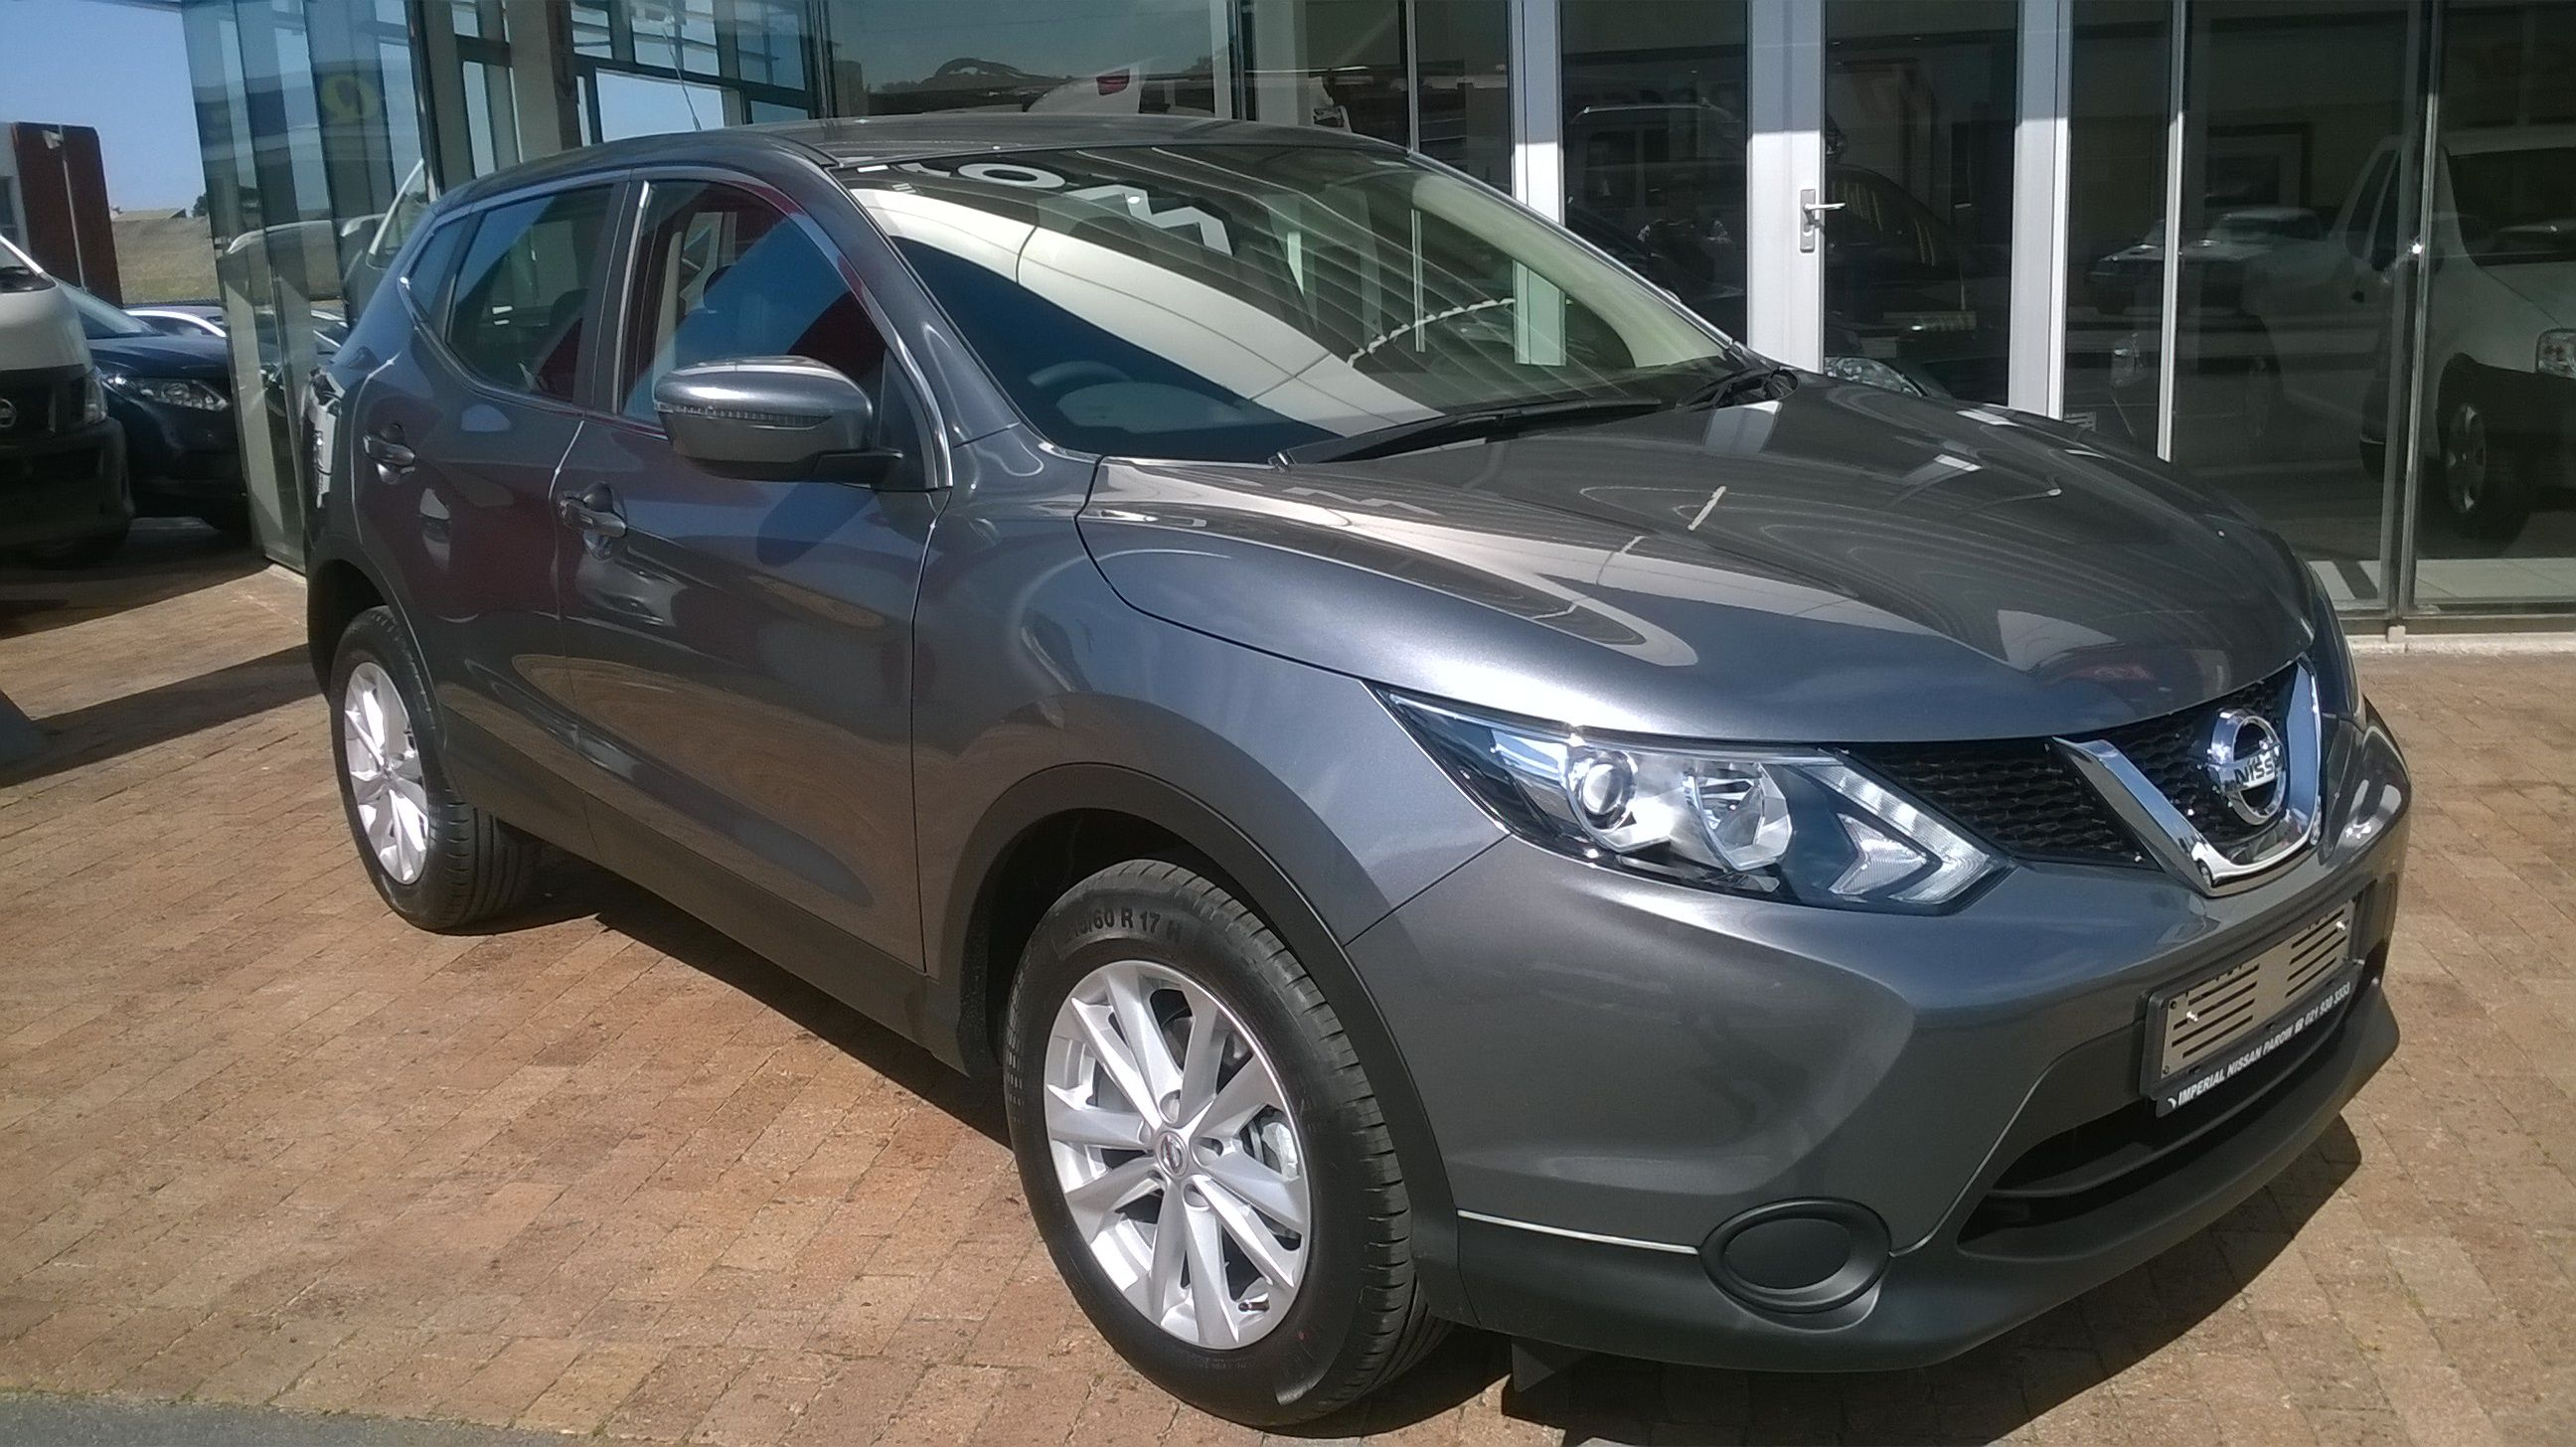 new nissan qashqai. for the best deals on nissan's, call dennis on